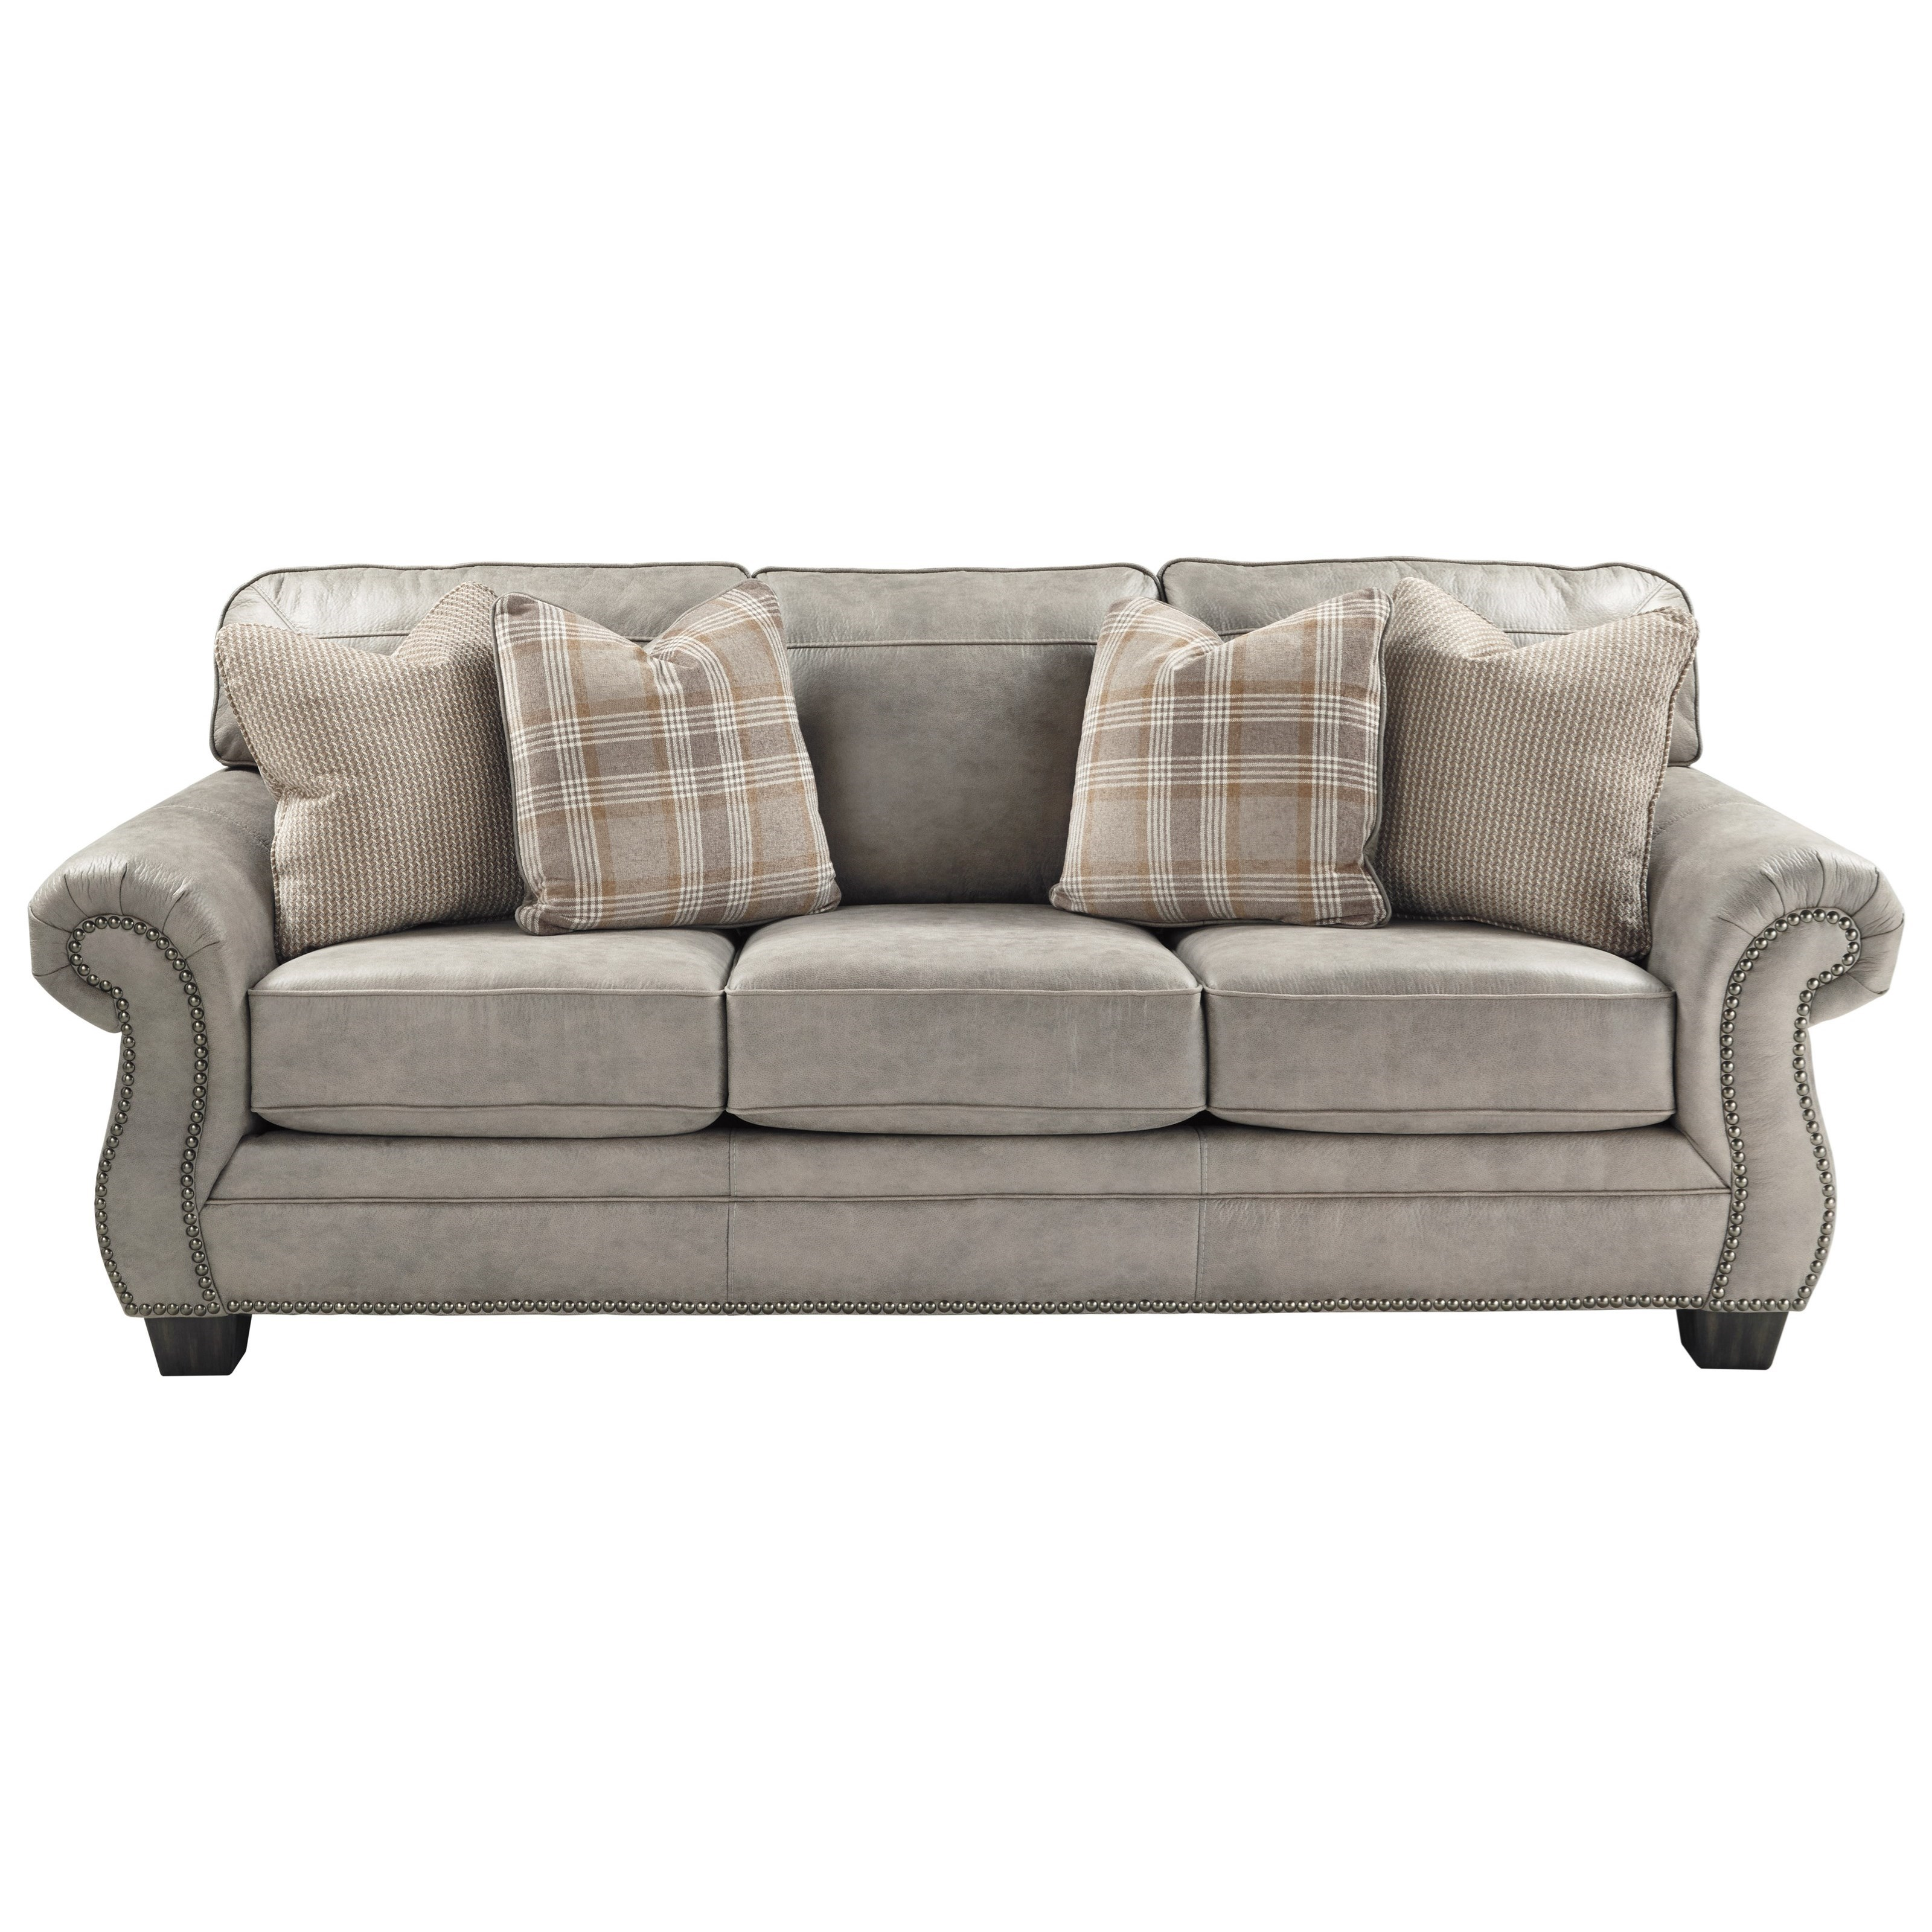 Olsberg Sofa by Signature Design by Ashley at Beck's Furniture